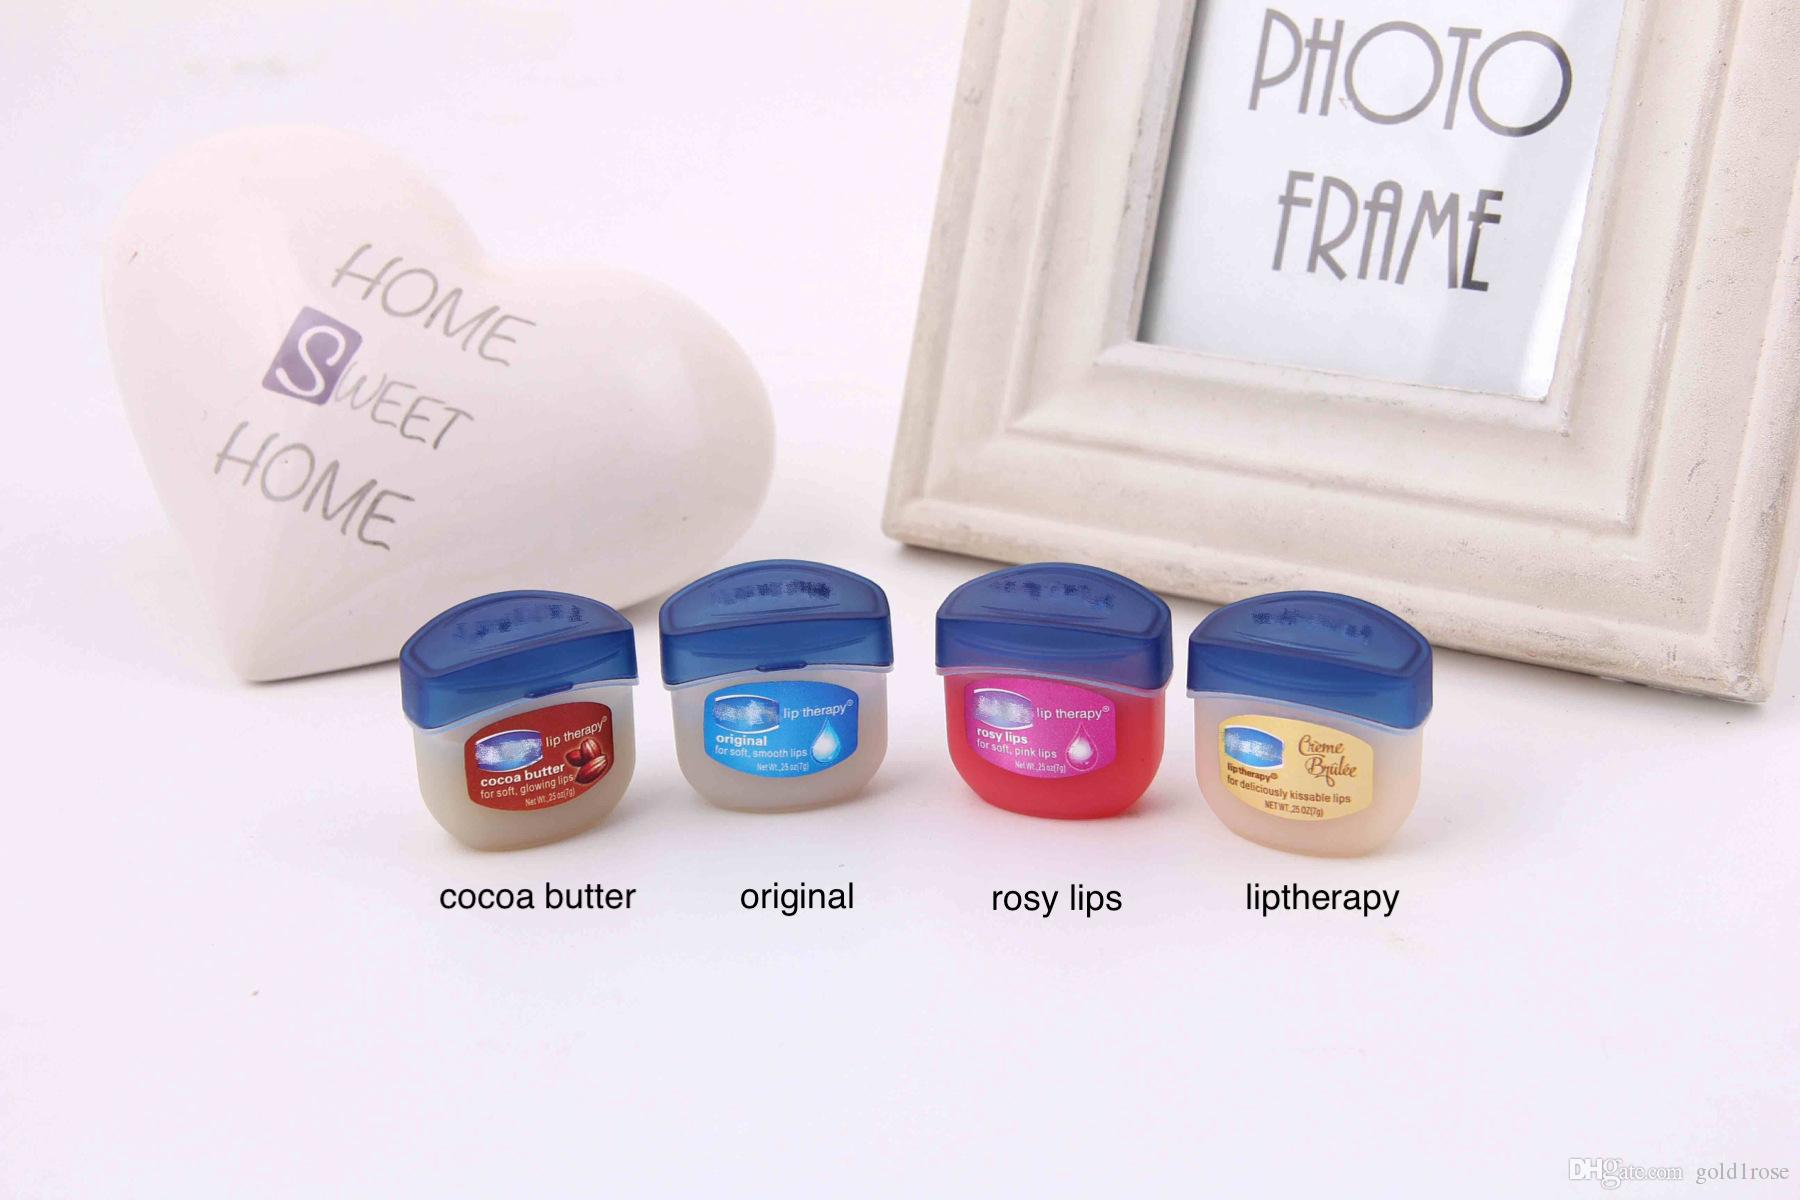 Promotionnew Makeup Vaseline Lip Therapy Cocoa Butter For Soft Rosy 7g Original Usa 100 New Glowing Lips Hydrating Petroleum Jelly Moisturizing Balm Cream Chapstick Tubes Clear